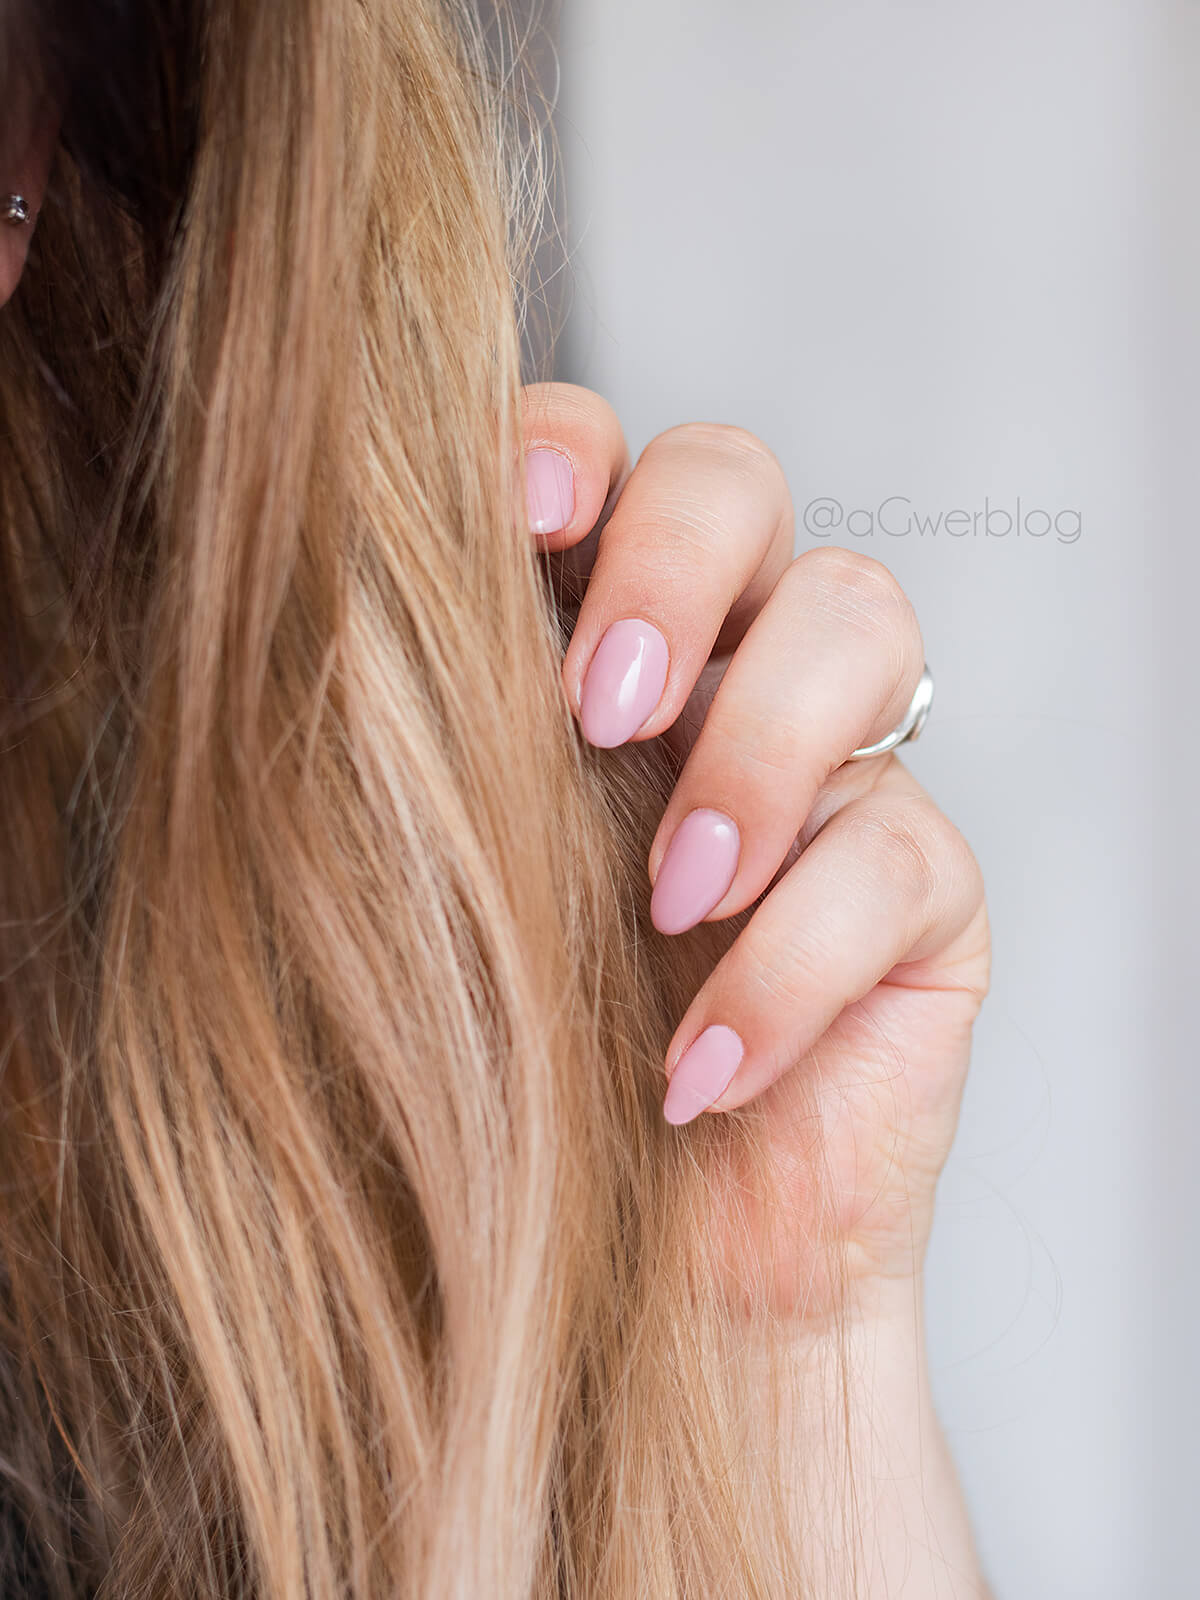 Semilac extend 5w1 Dirty Nude Rose